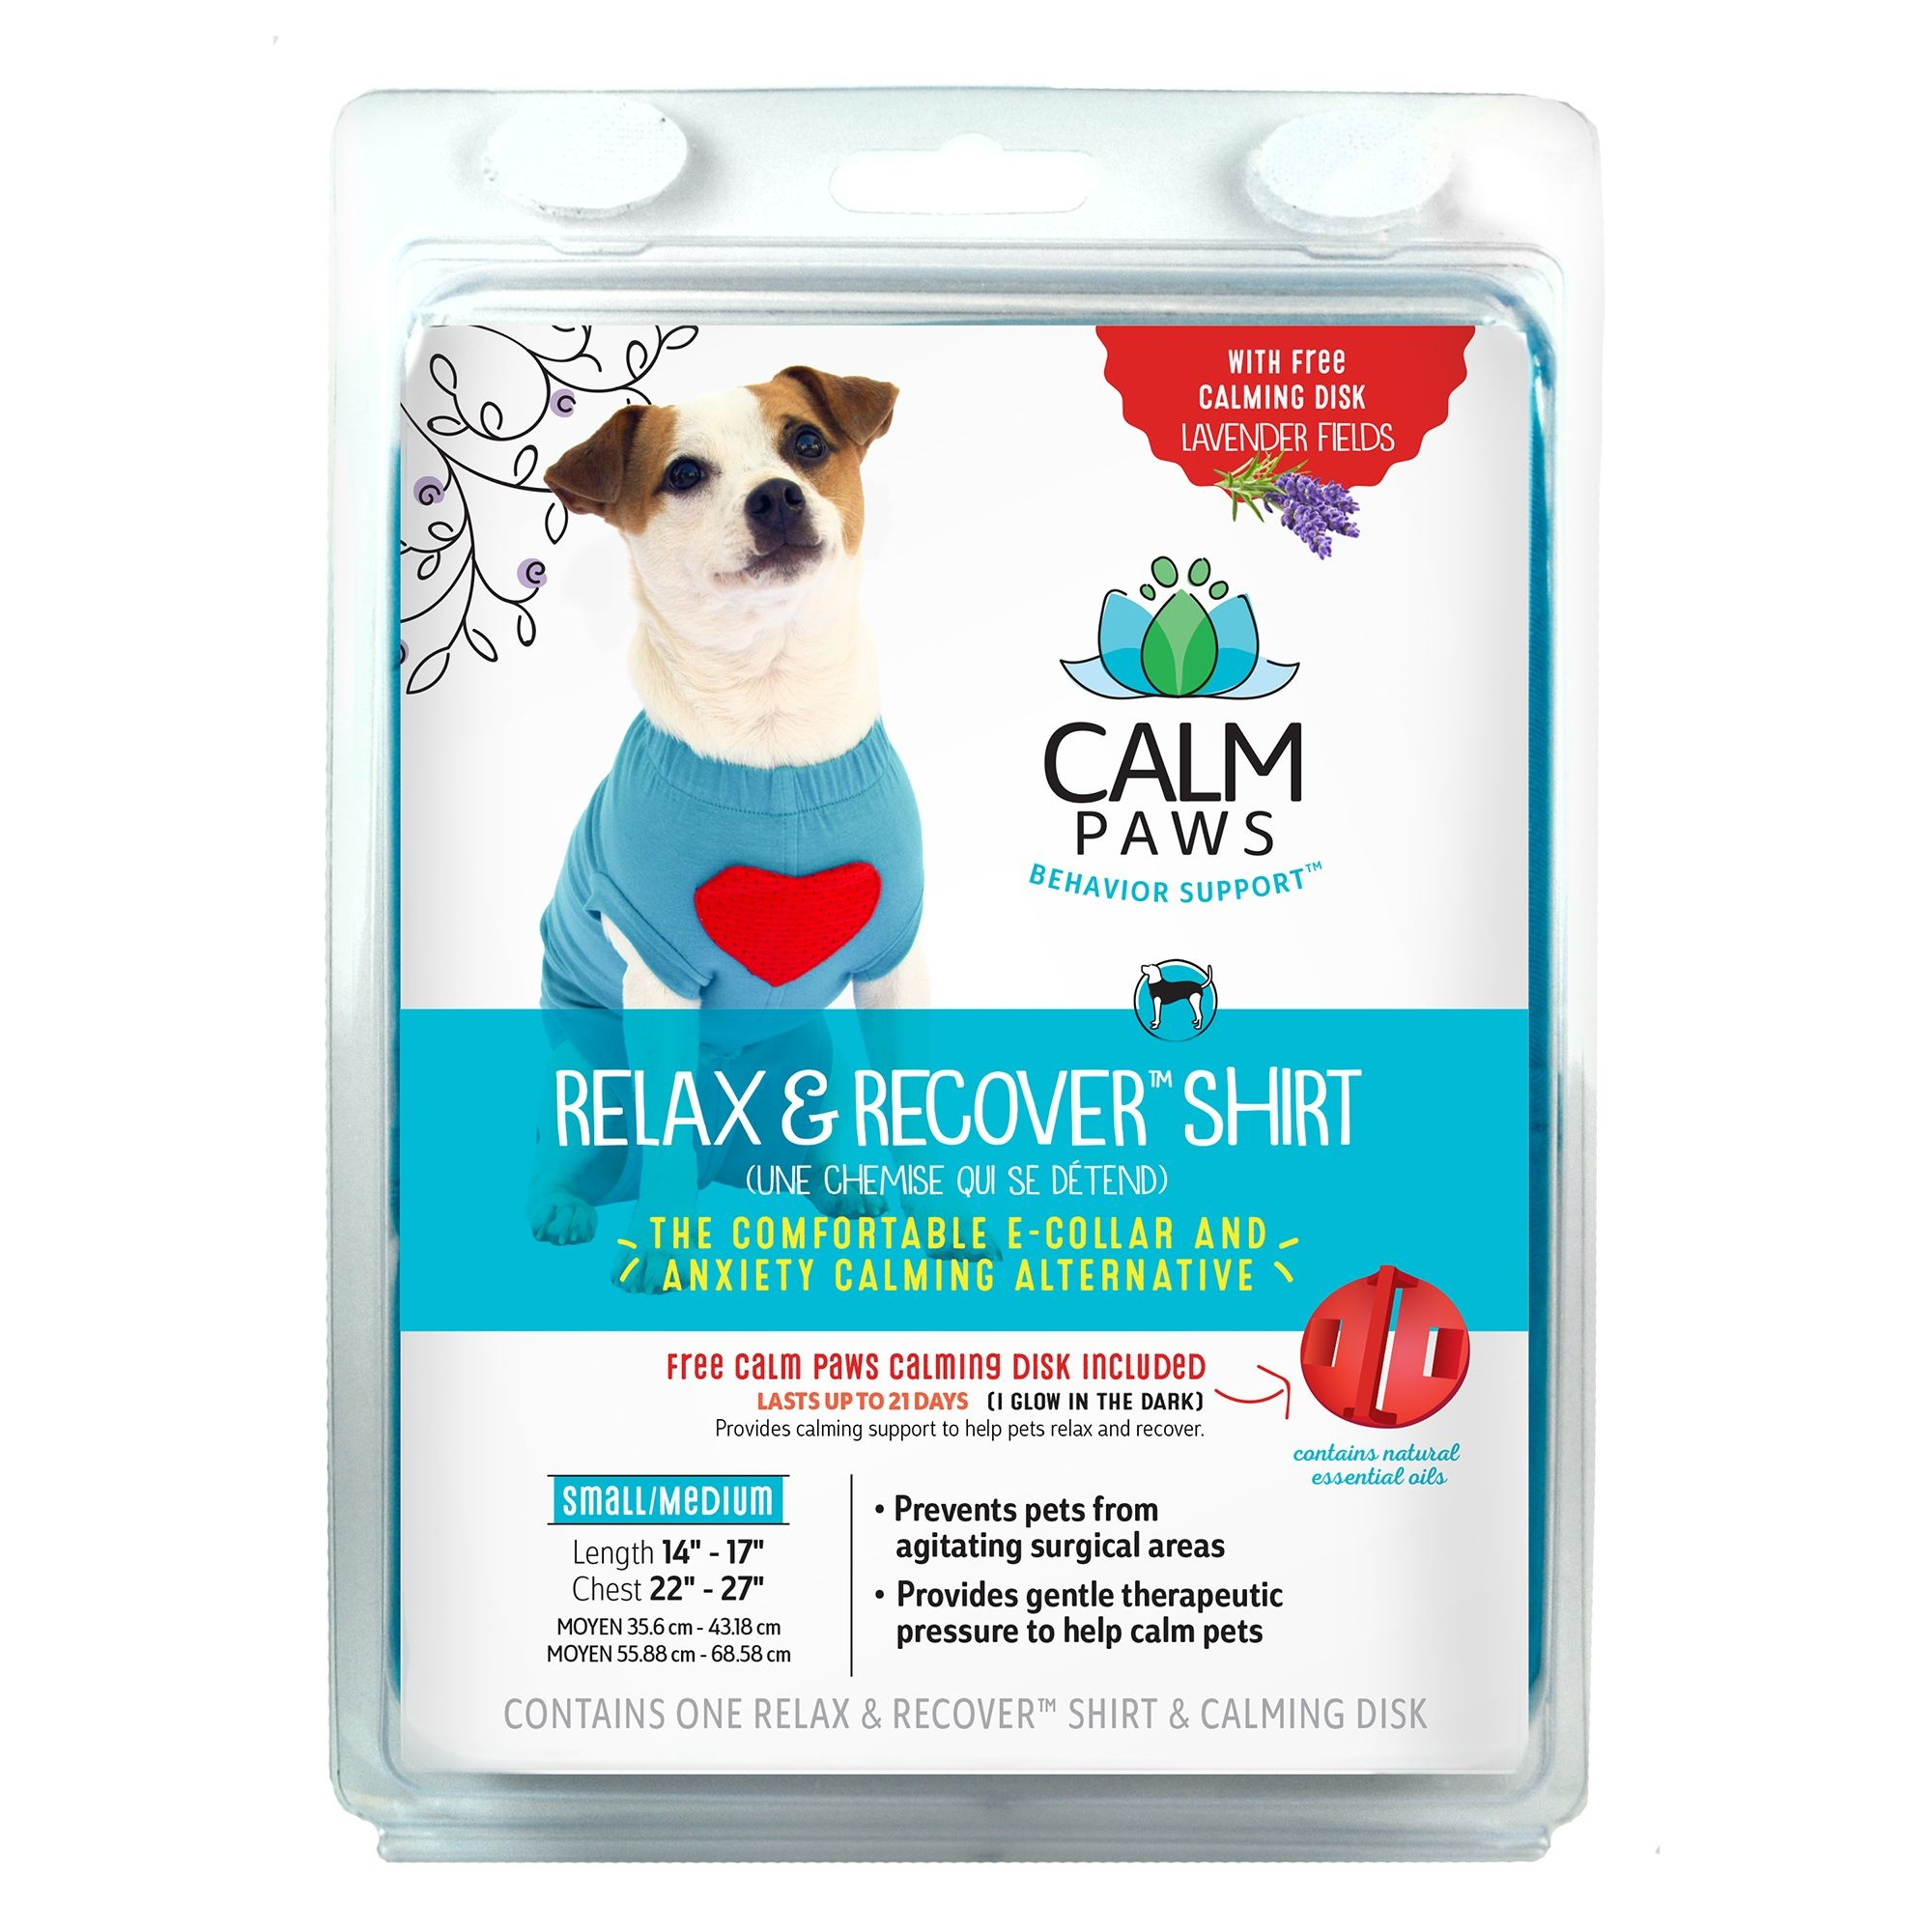 21st Centry Animal Health Care Calm Paws Relax & Recover Dog Shirt